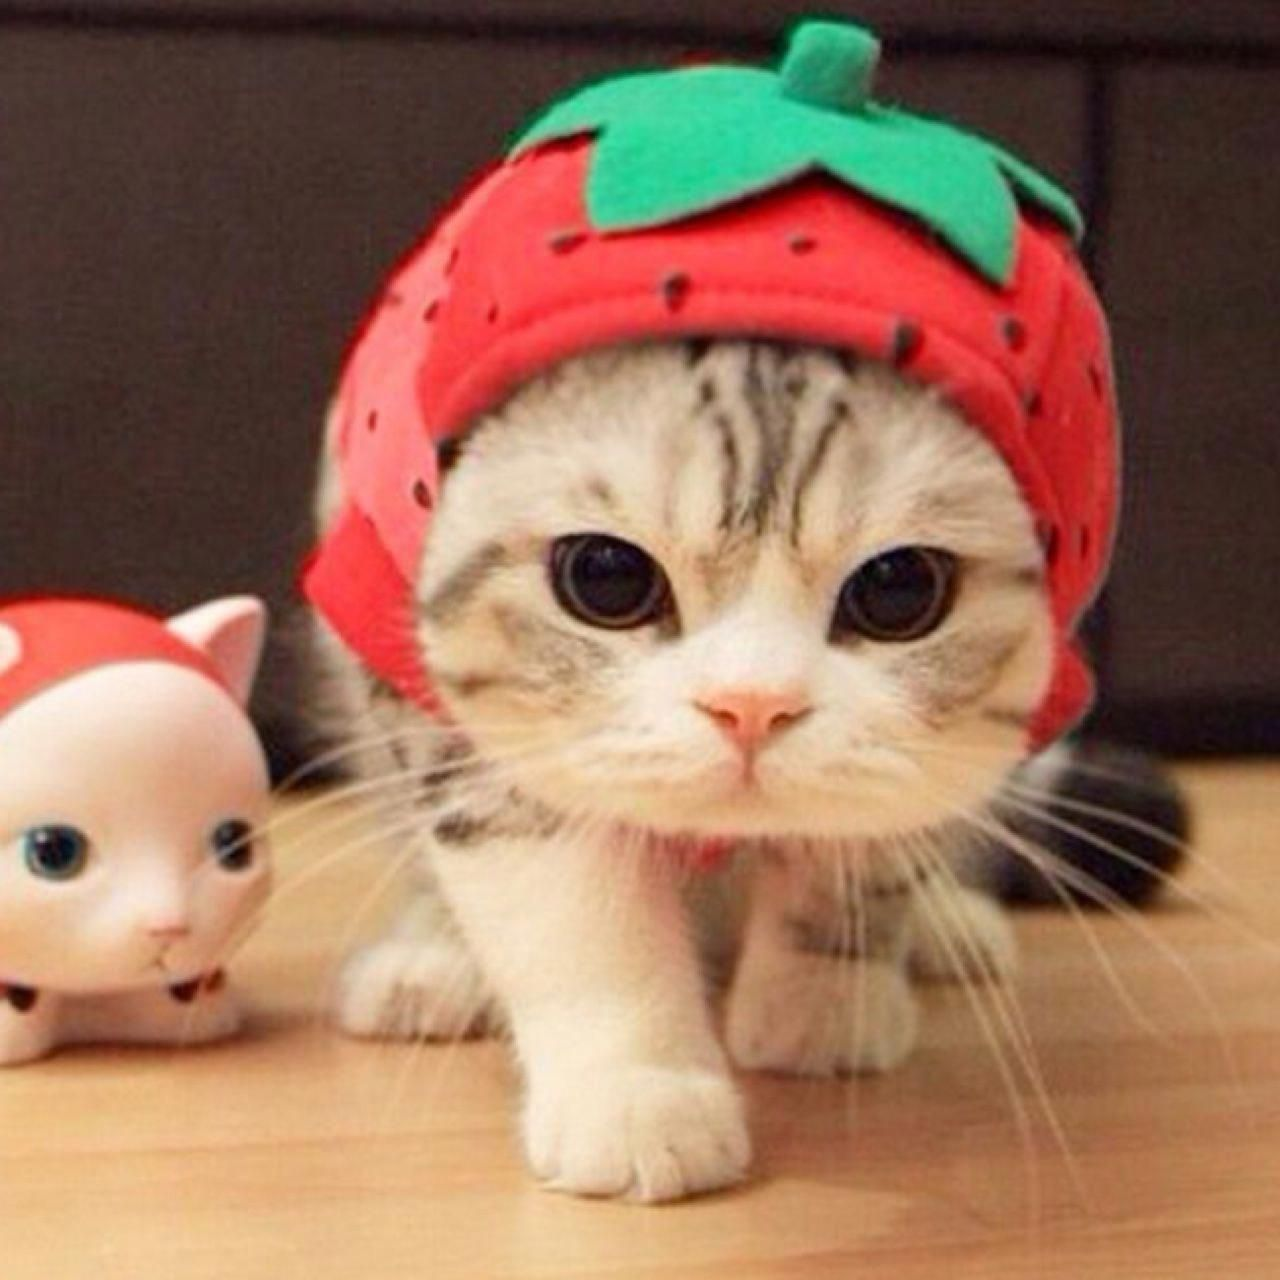 Strawberry Hat Cute Halloween Costume For Cats Or Dogs New From Japan Never Opened Rare Funny Design Not Found Anywhere Onl Cute Baby Cats Baby Cats Cats